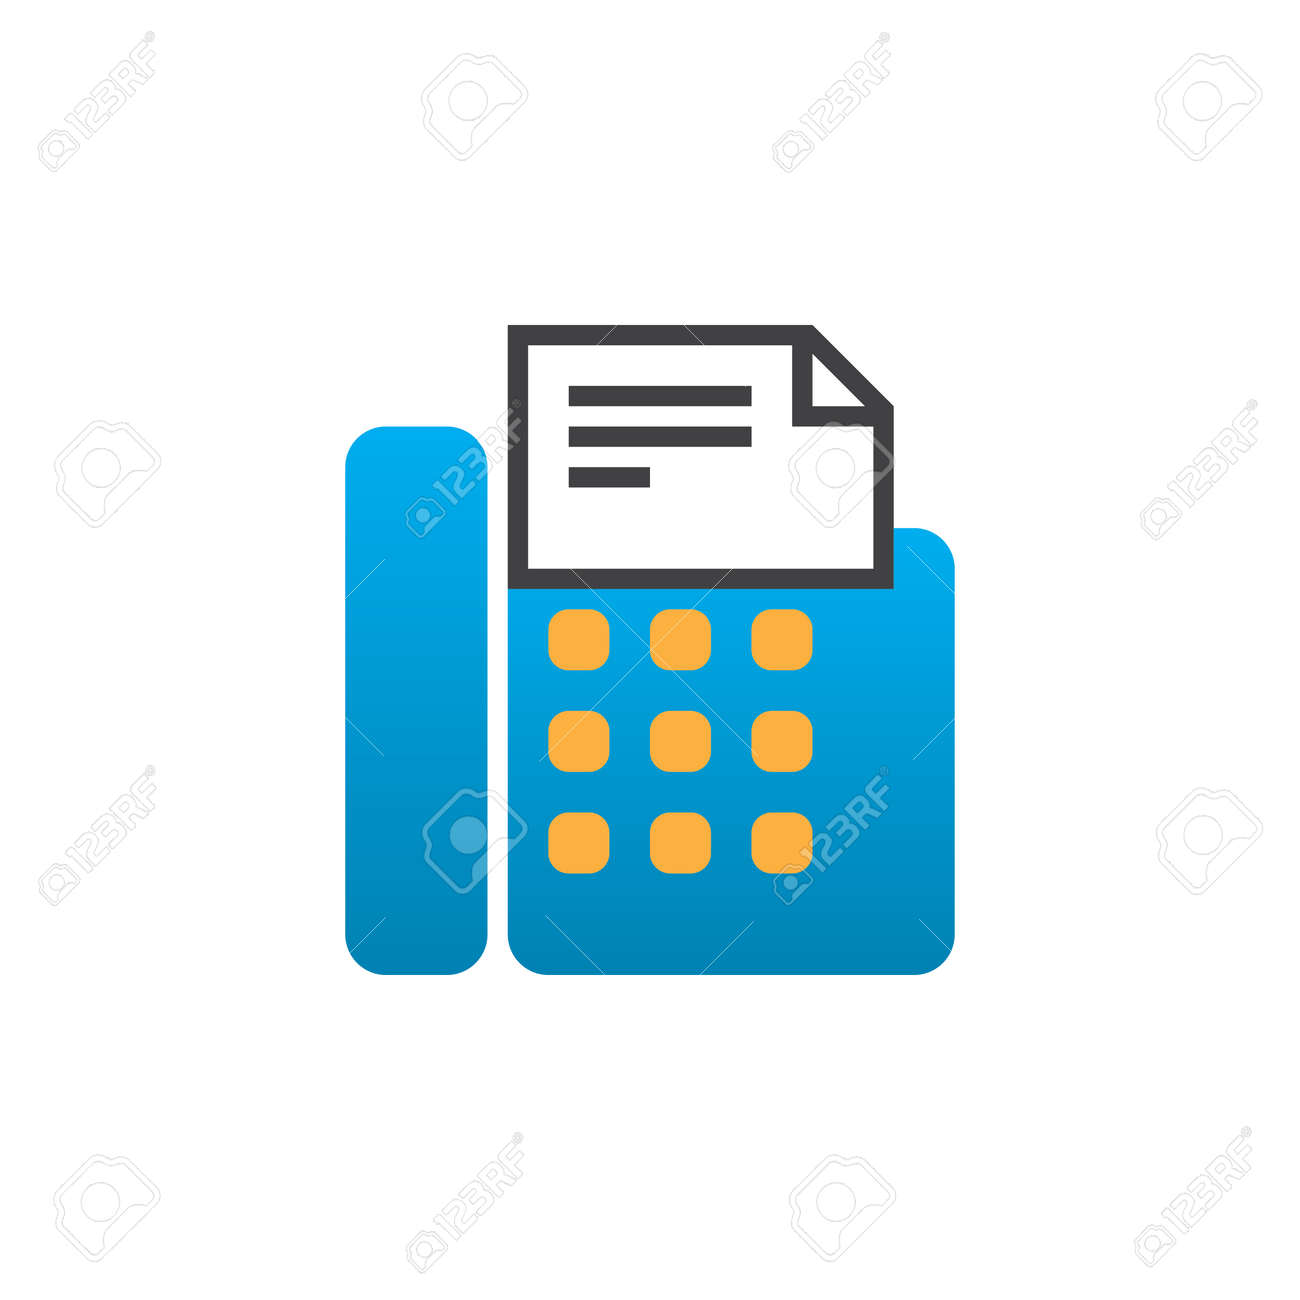 fax machine icon vector telefax solid logo illustration colorful royalty free cliparts vectors and stock illustration image 77920875 fax machine icon vector telefax solid logo illustration colorful